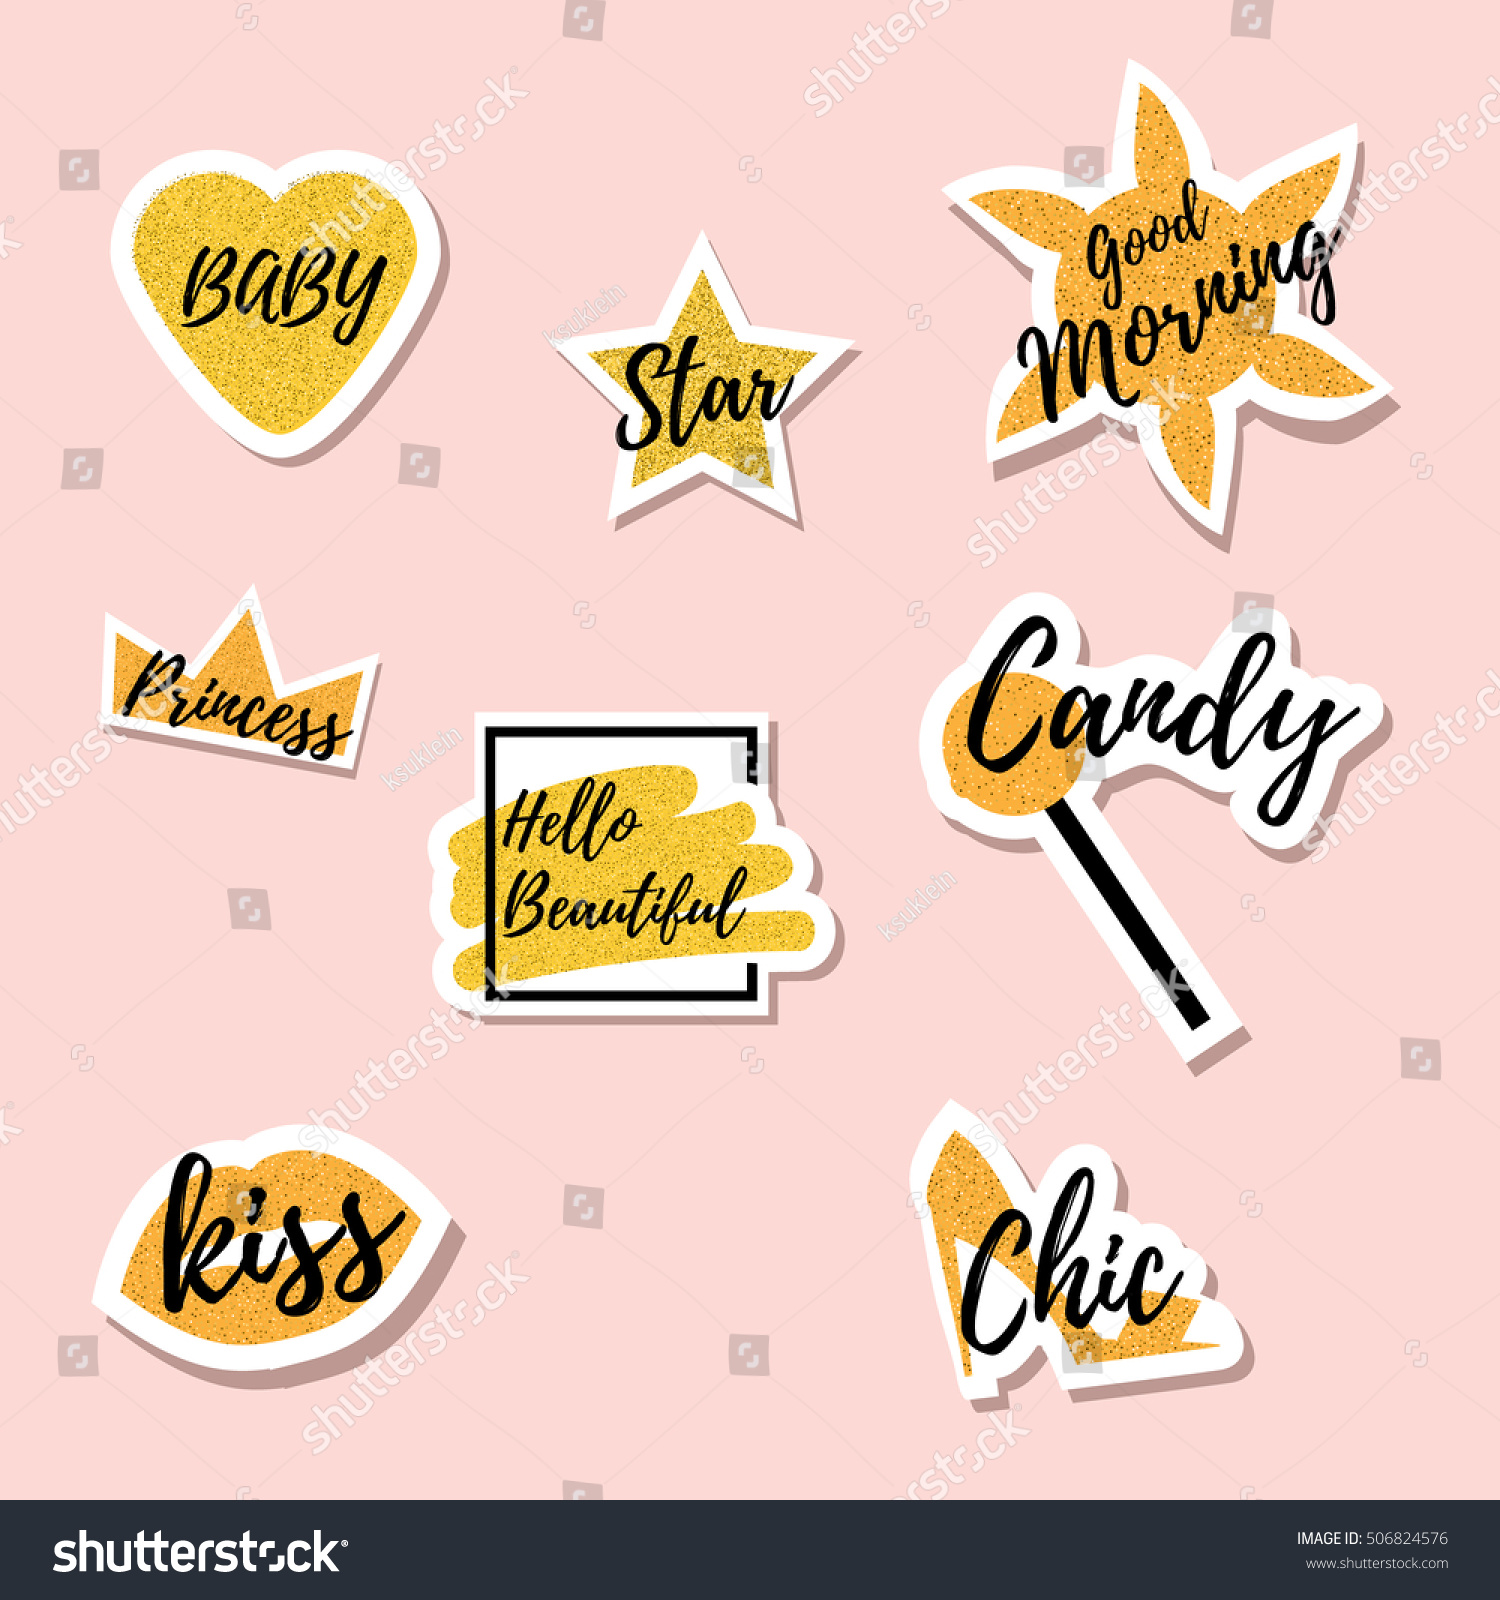 Trendy Fashionable Gold Colored Pins Cool Stock Vector Royalty Free